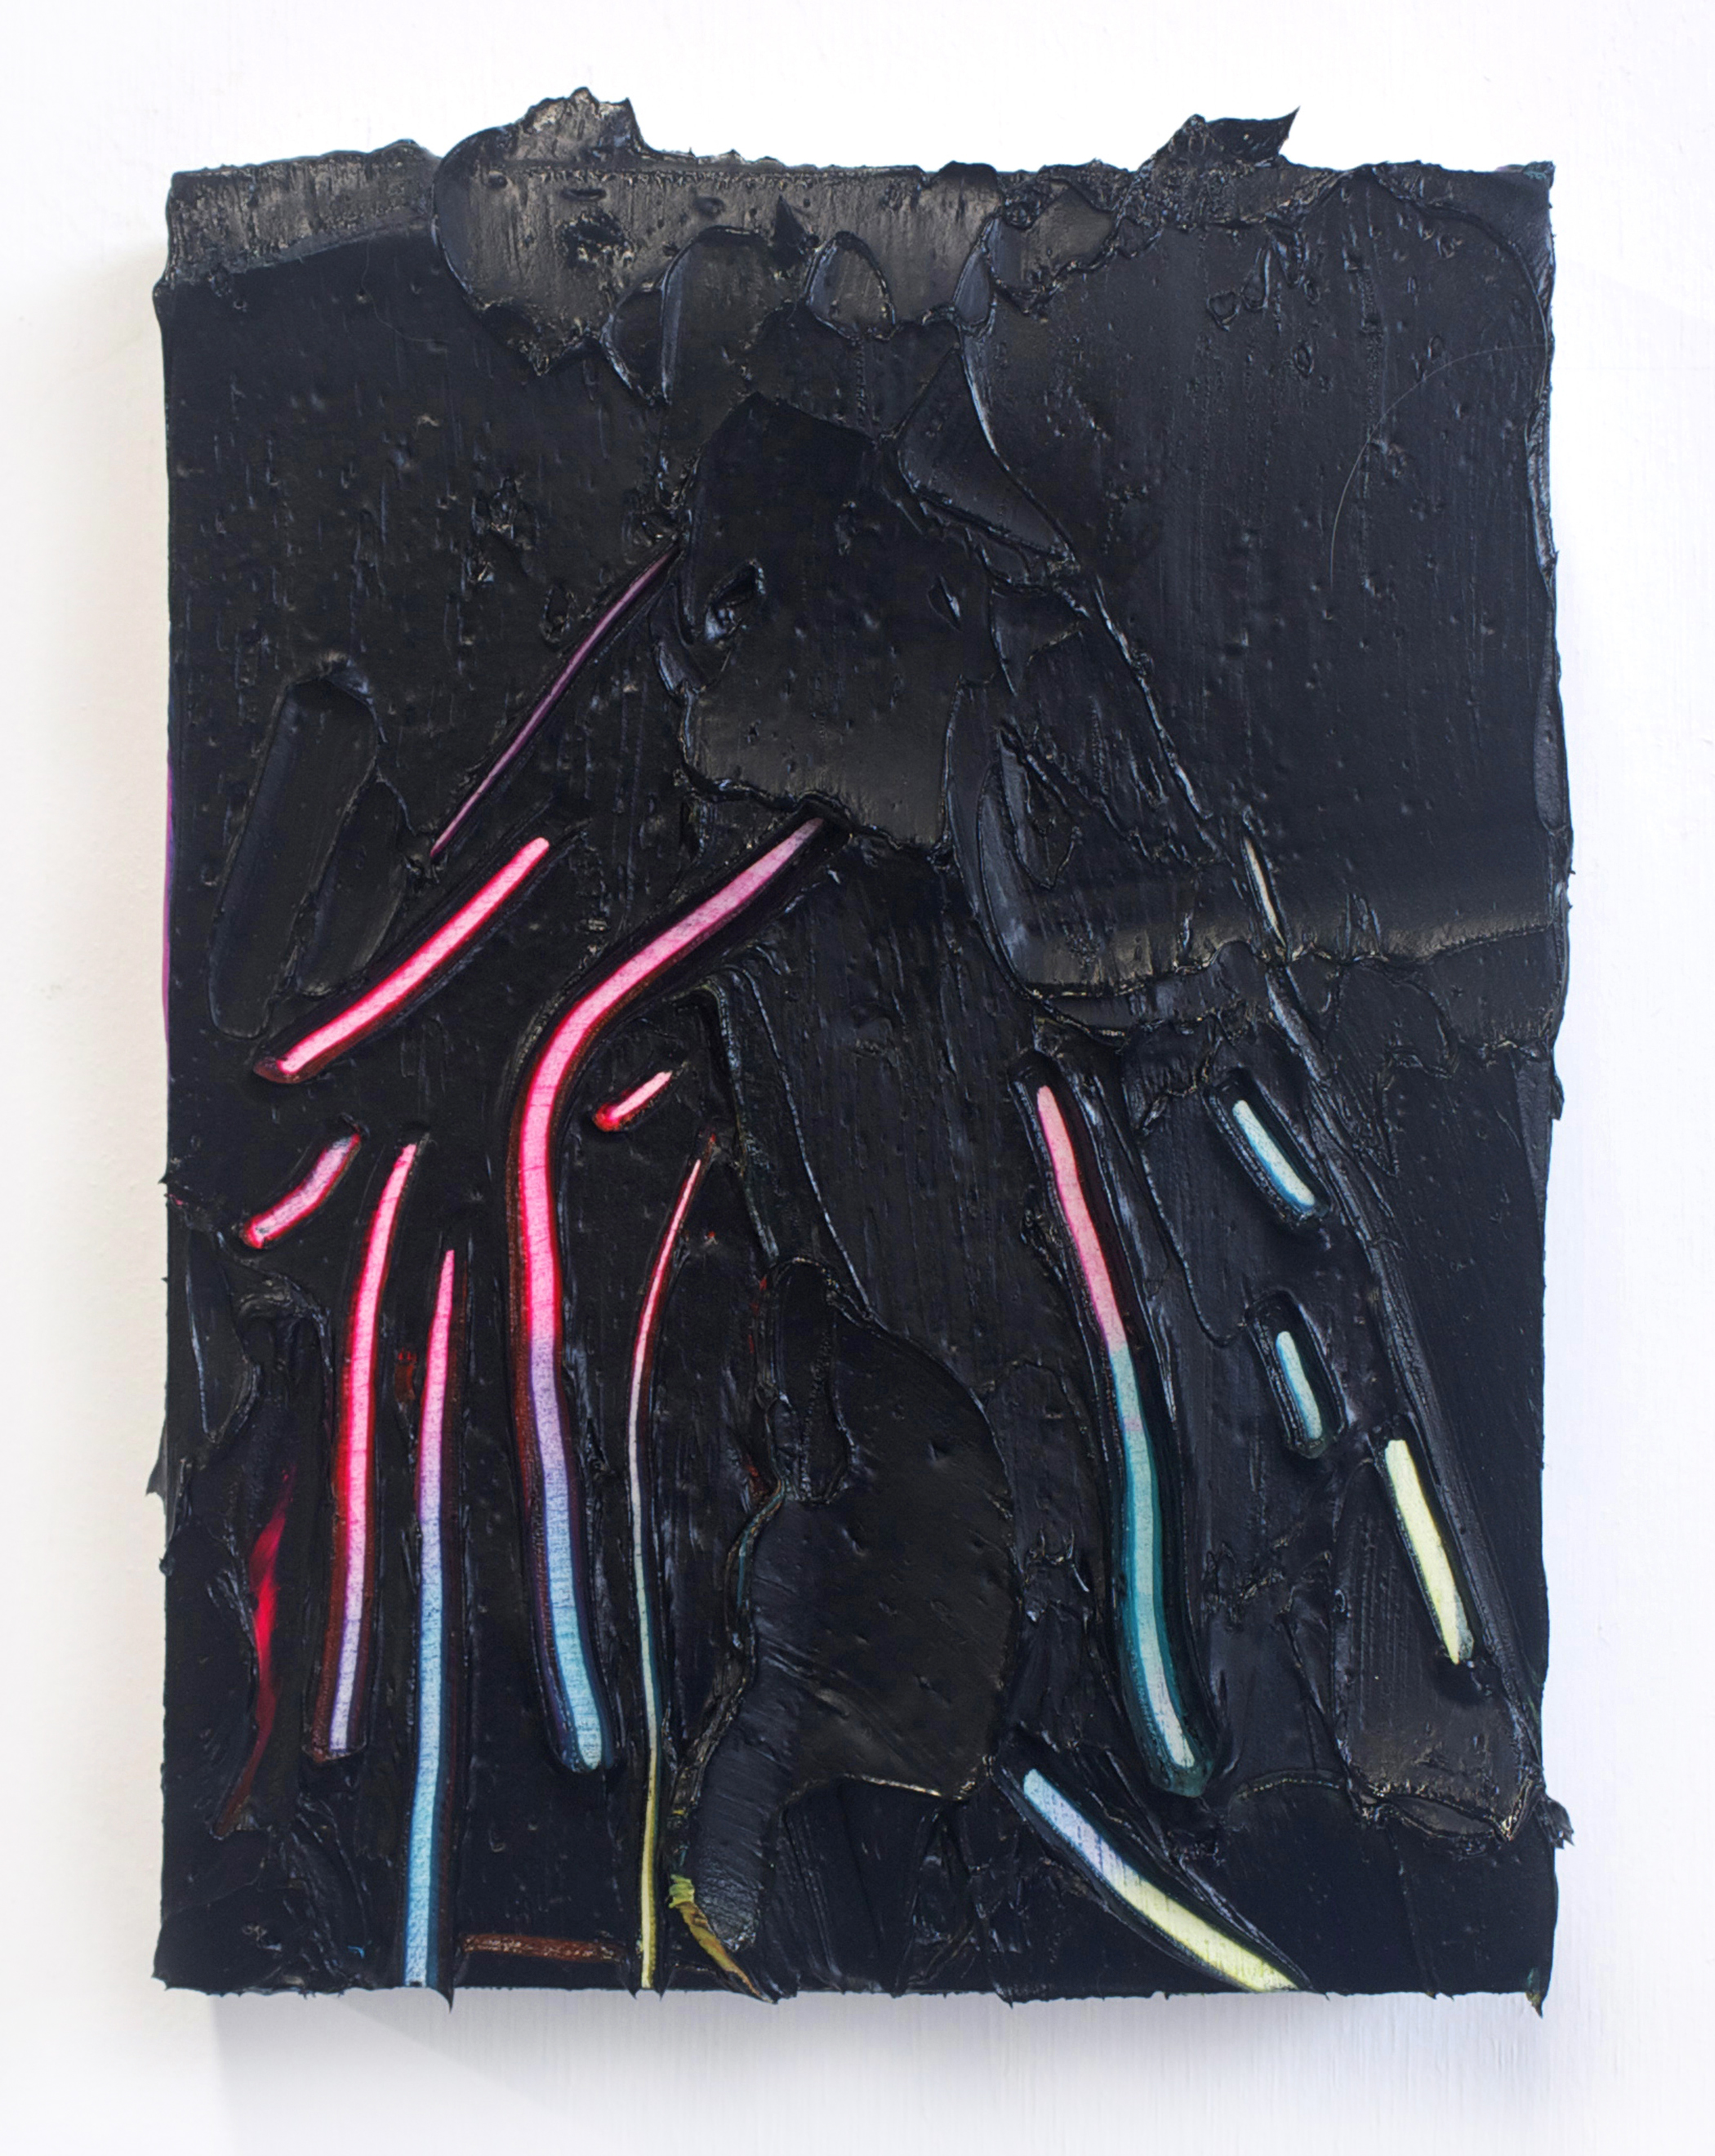 Glowsticks / oil on panel / 8 x 6 inches